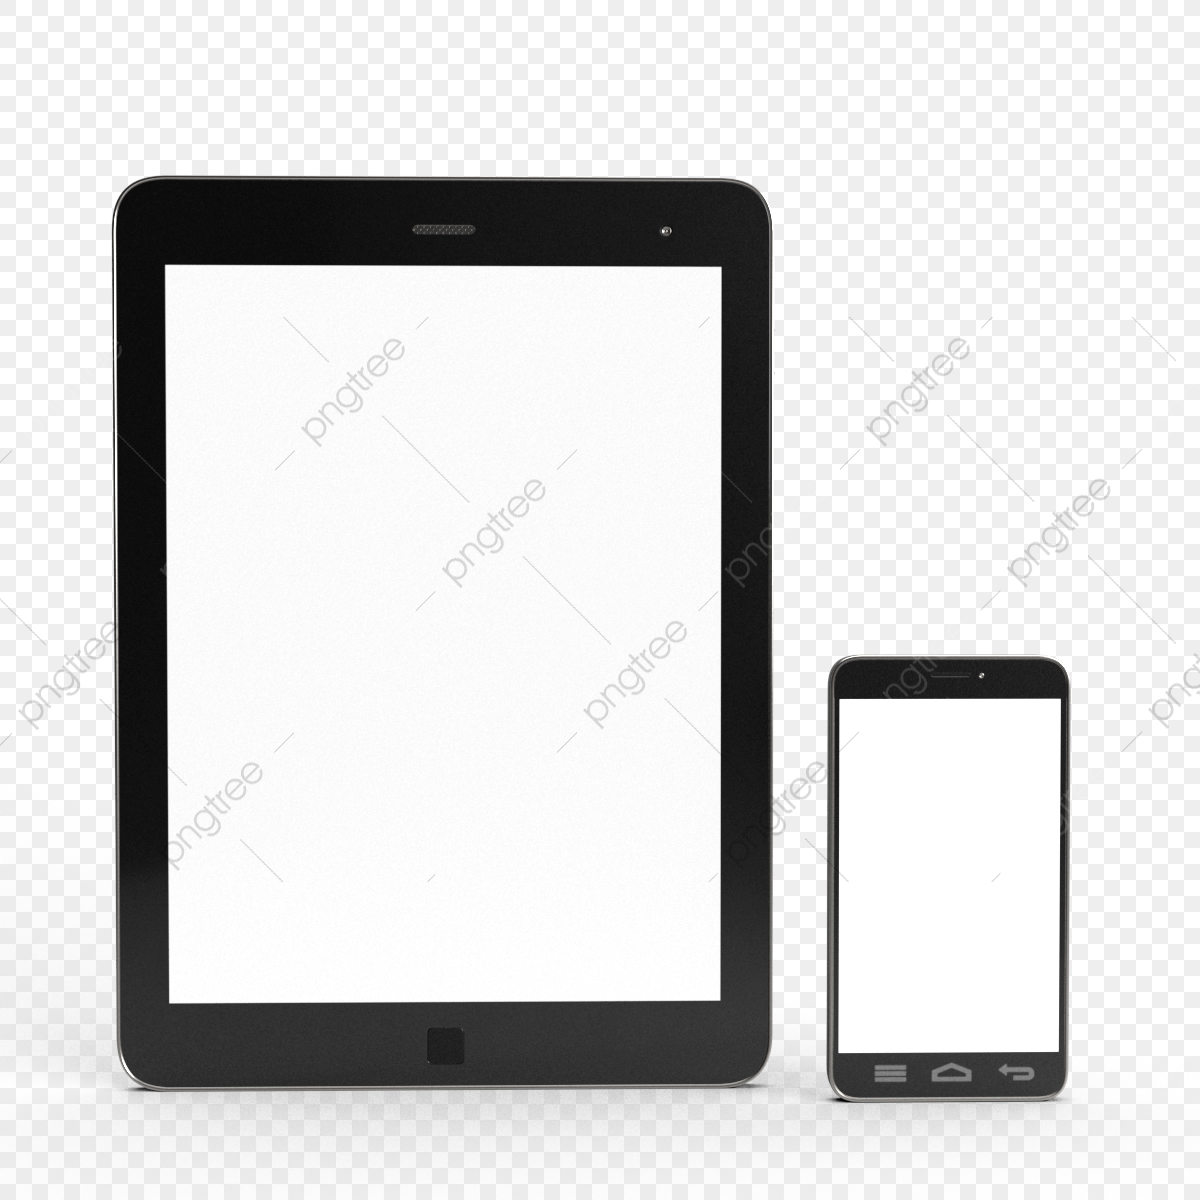 Black Tablet, Tablet, White, Ipad PNG Transparent Clipart Image and.